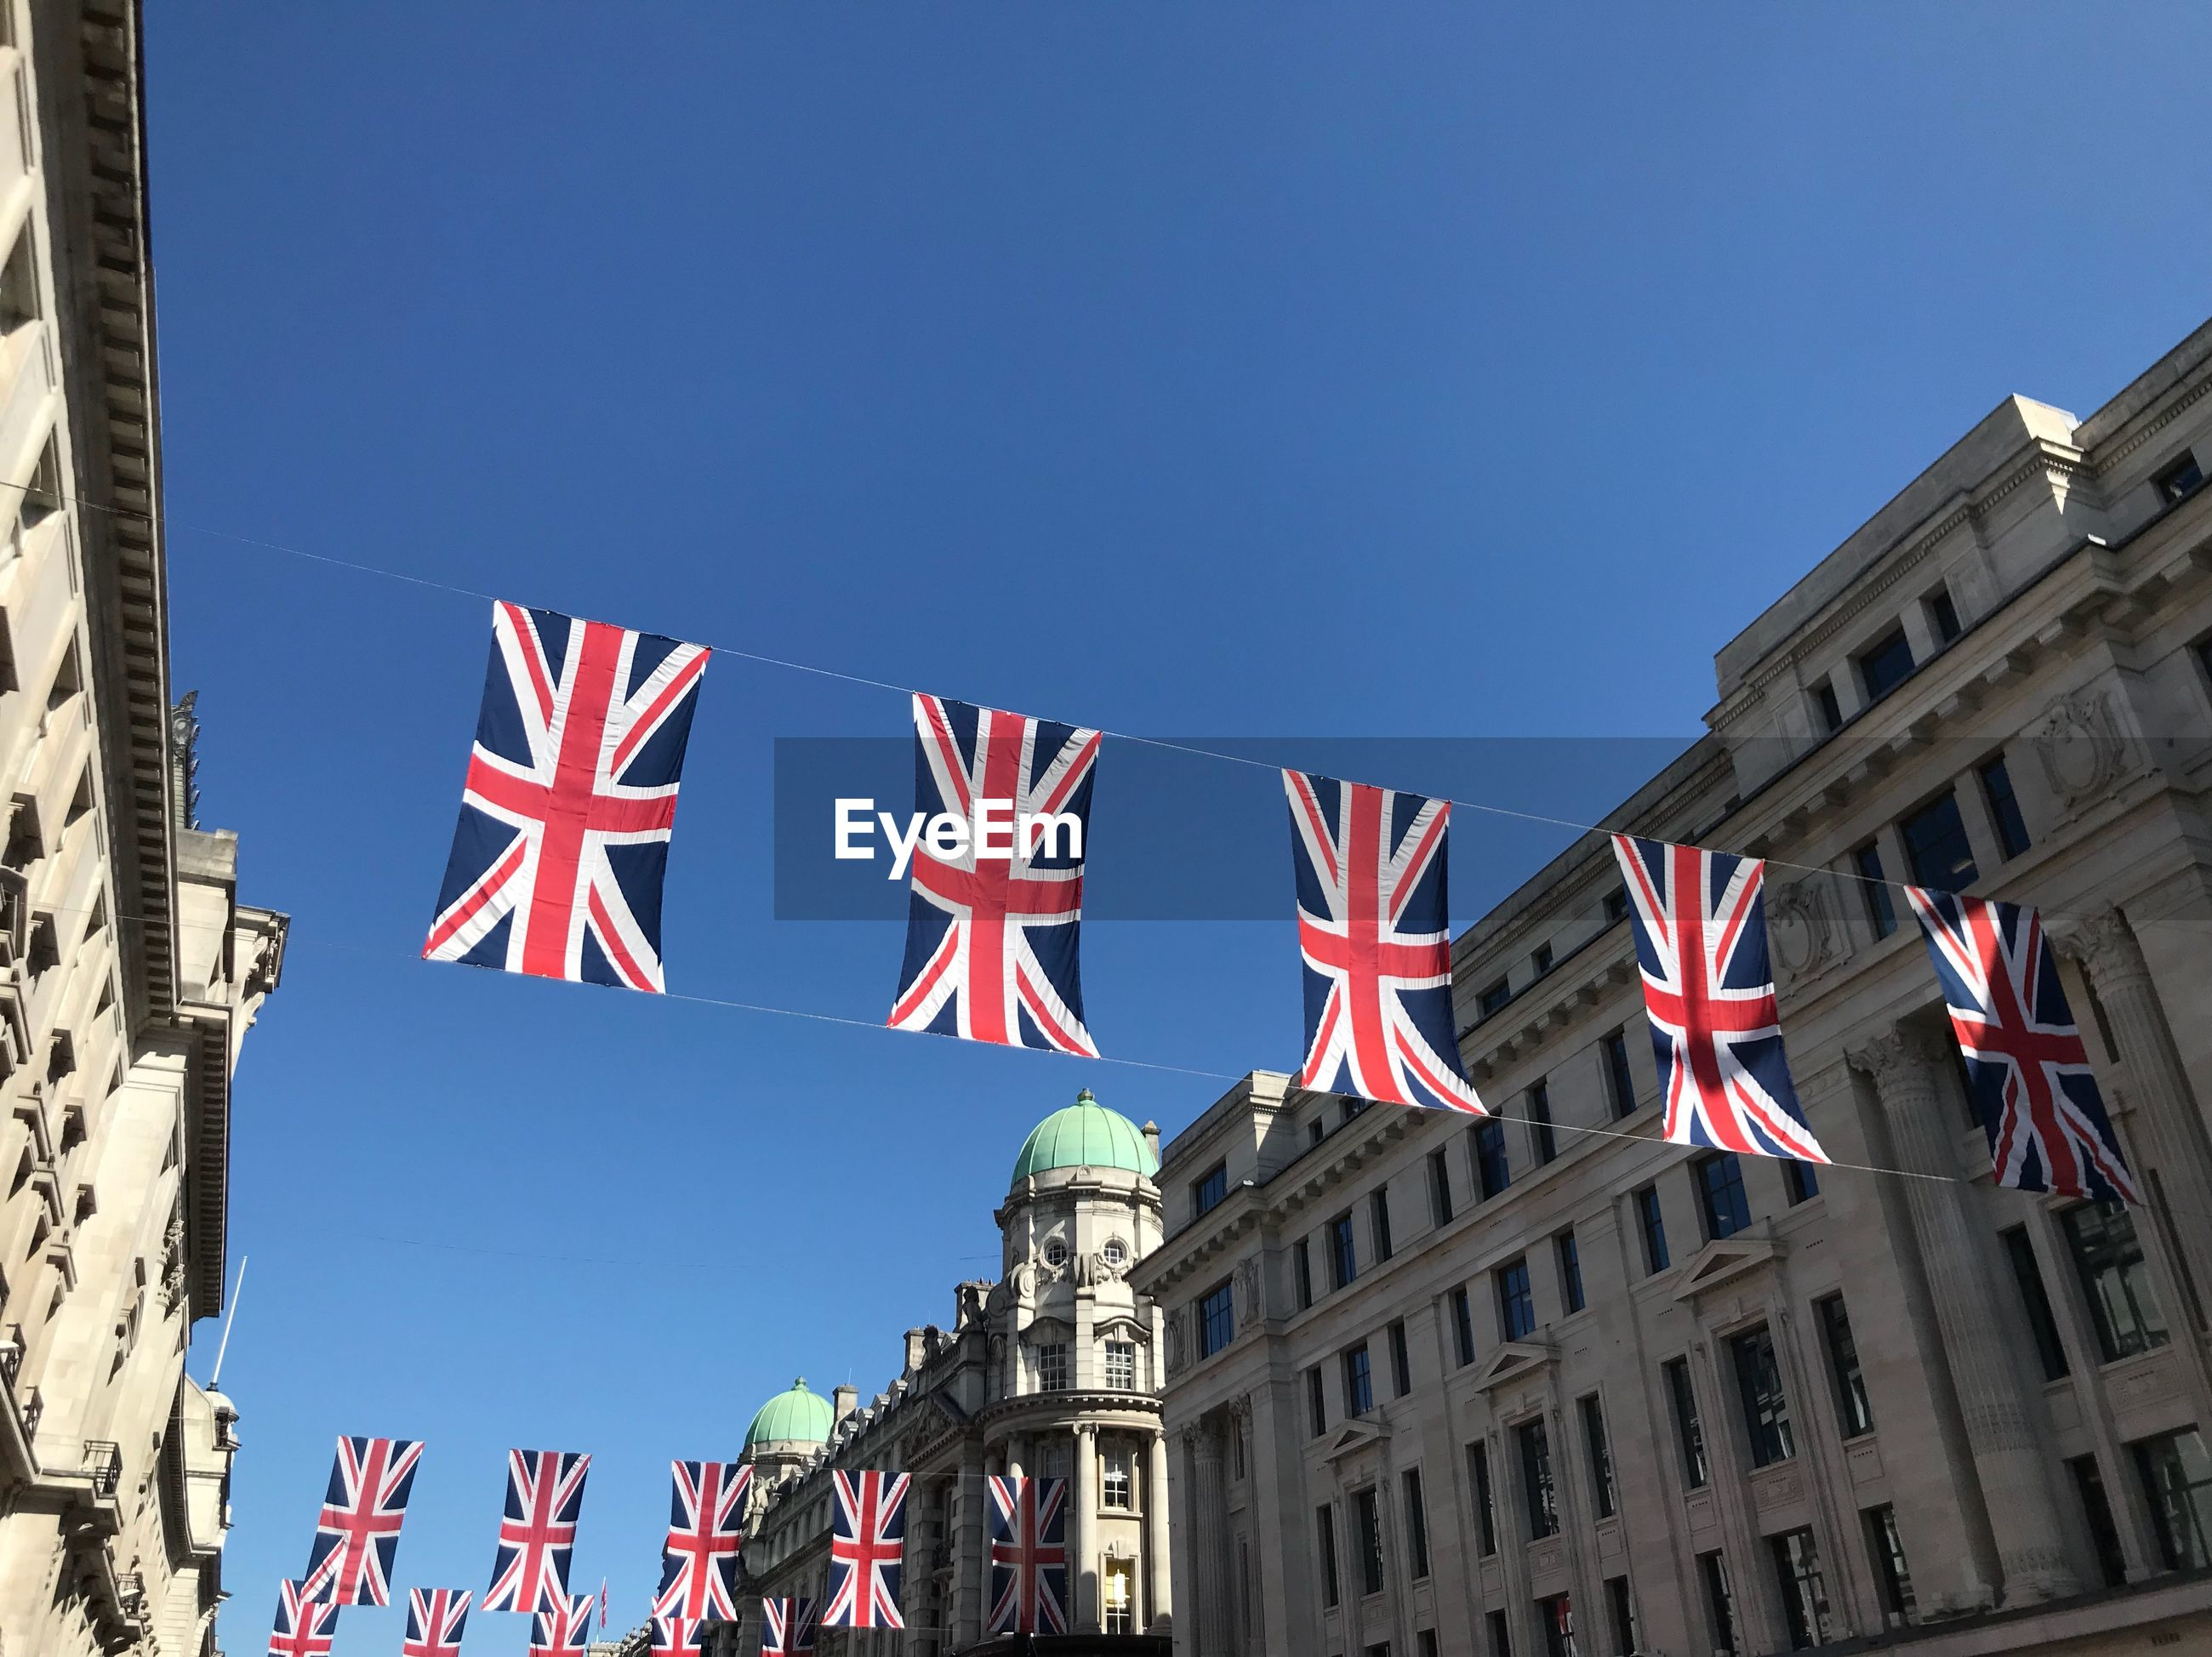 Low angle view of union jacks hanging in city against clear blue sky